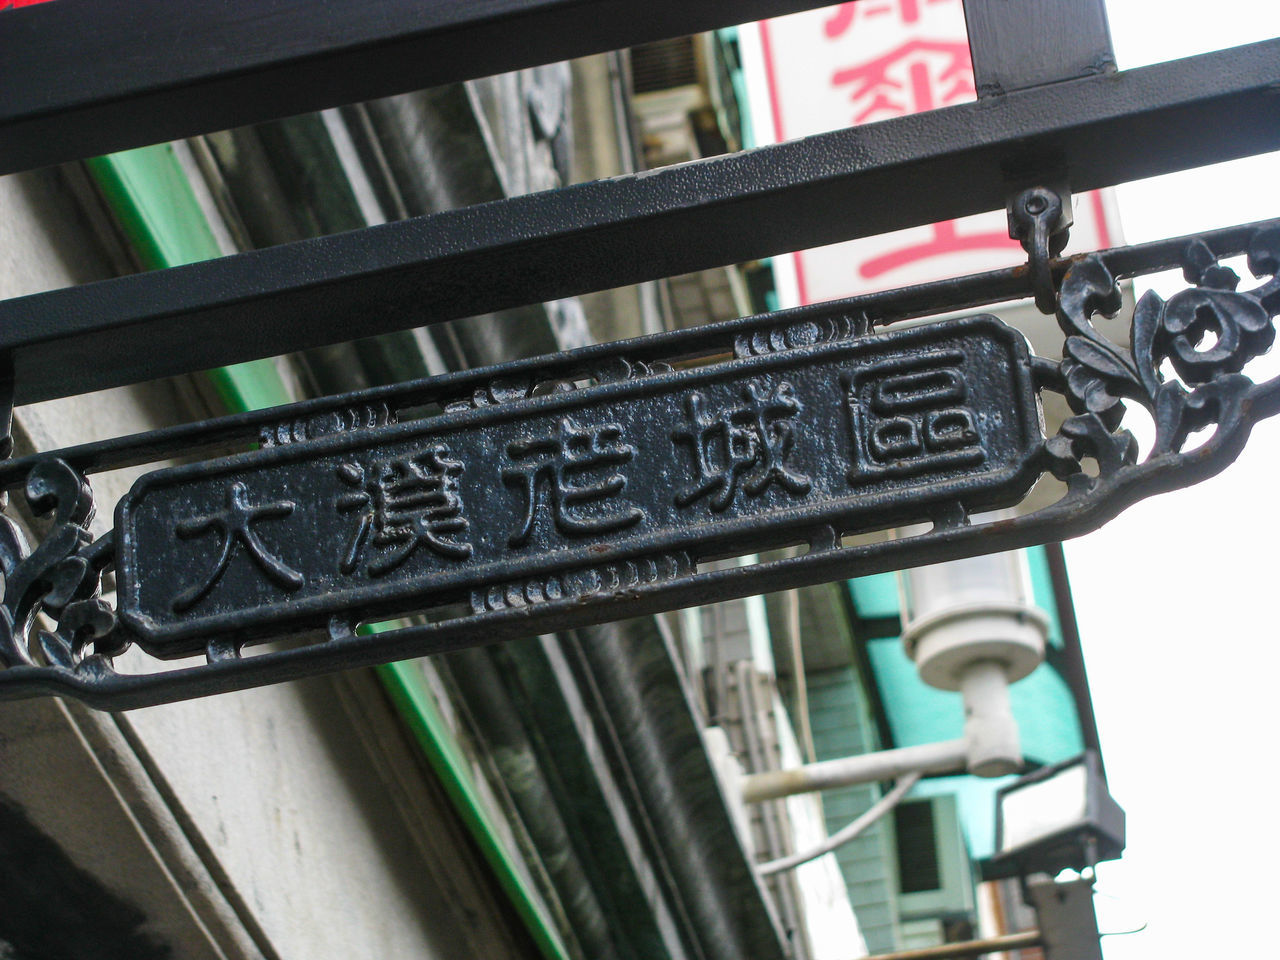 Close-up Communication Day Indoors  No People Street Signs Taiwan Attractions Taiwan Culture Taiwan Travel Technology Travel Destinations 大溪老城區 大溪老街 老城區